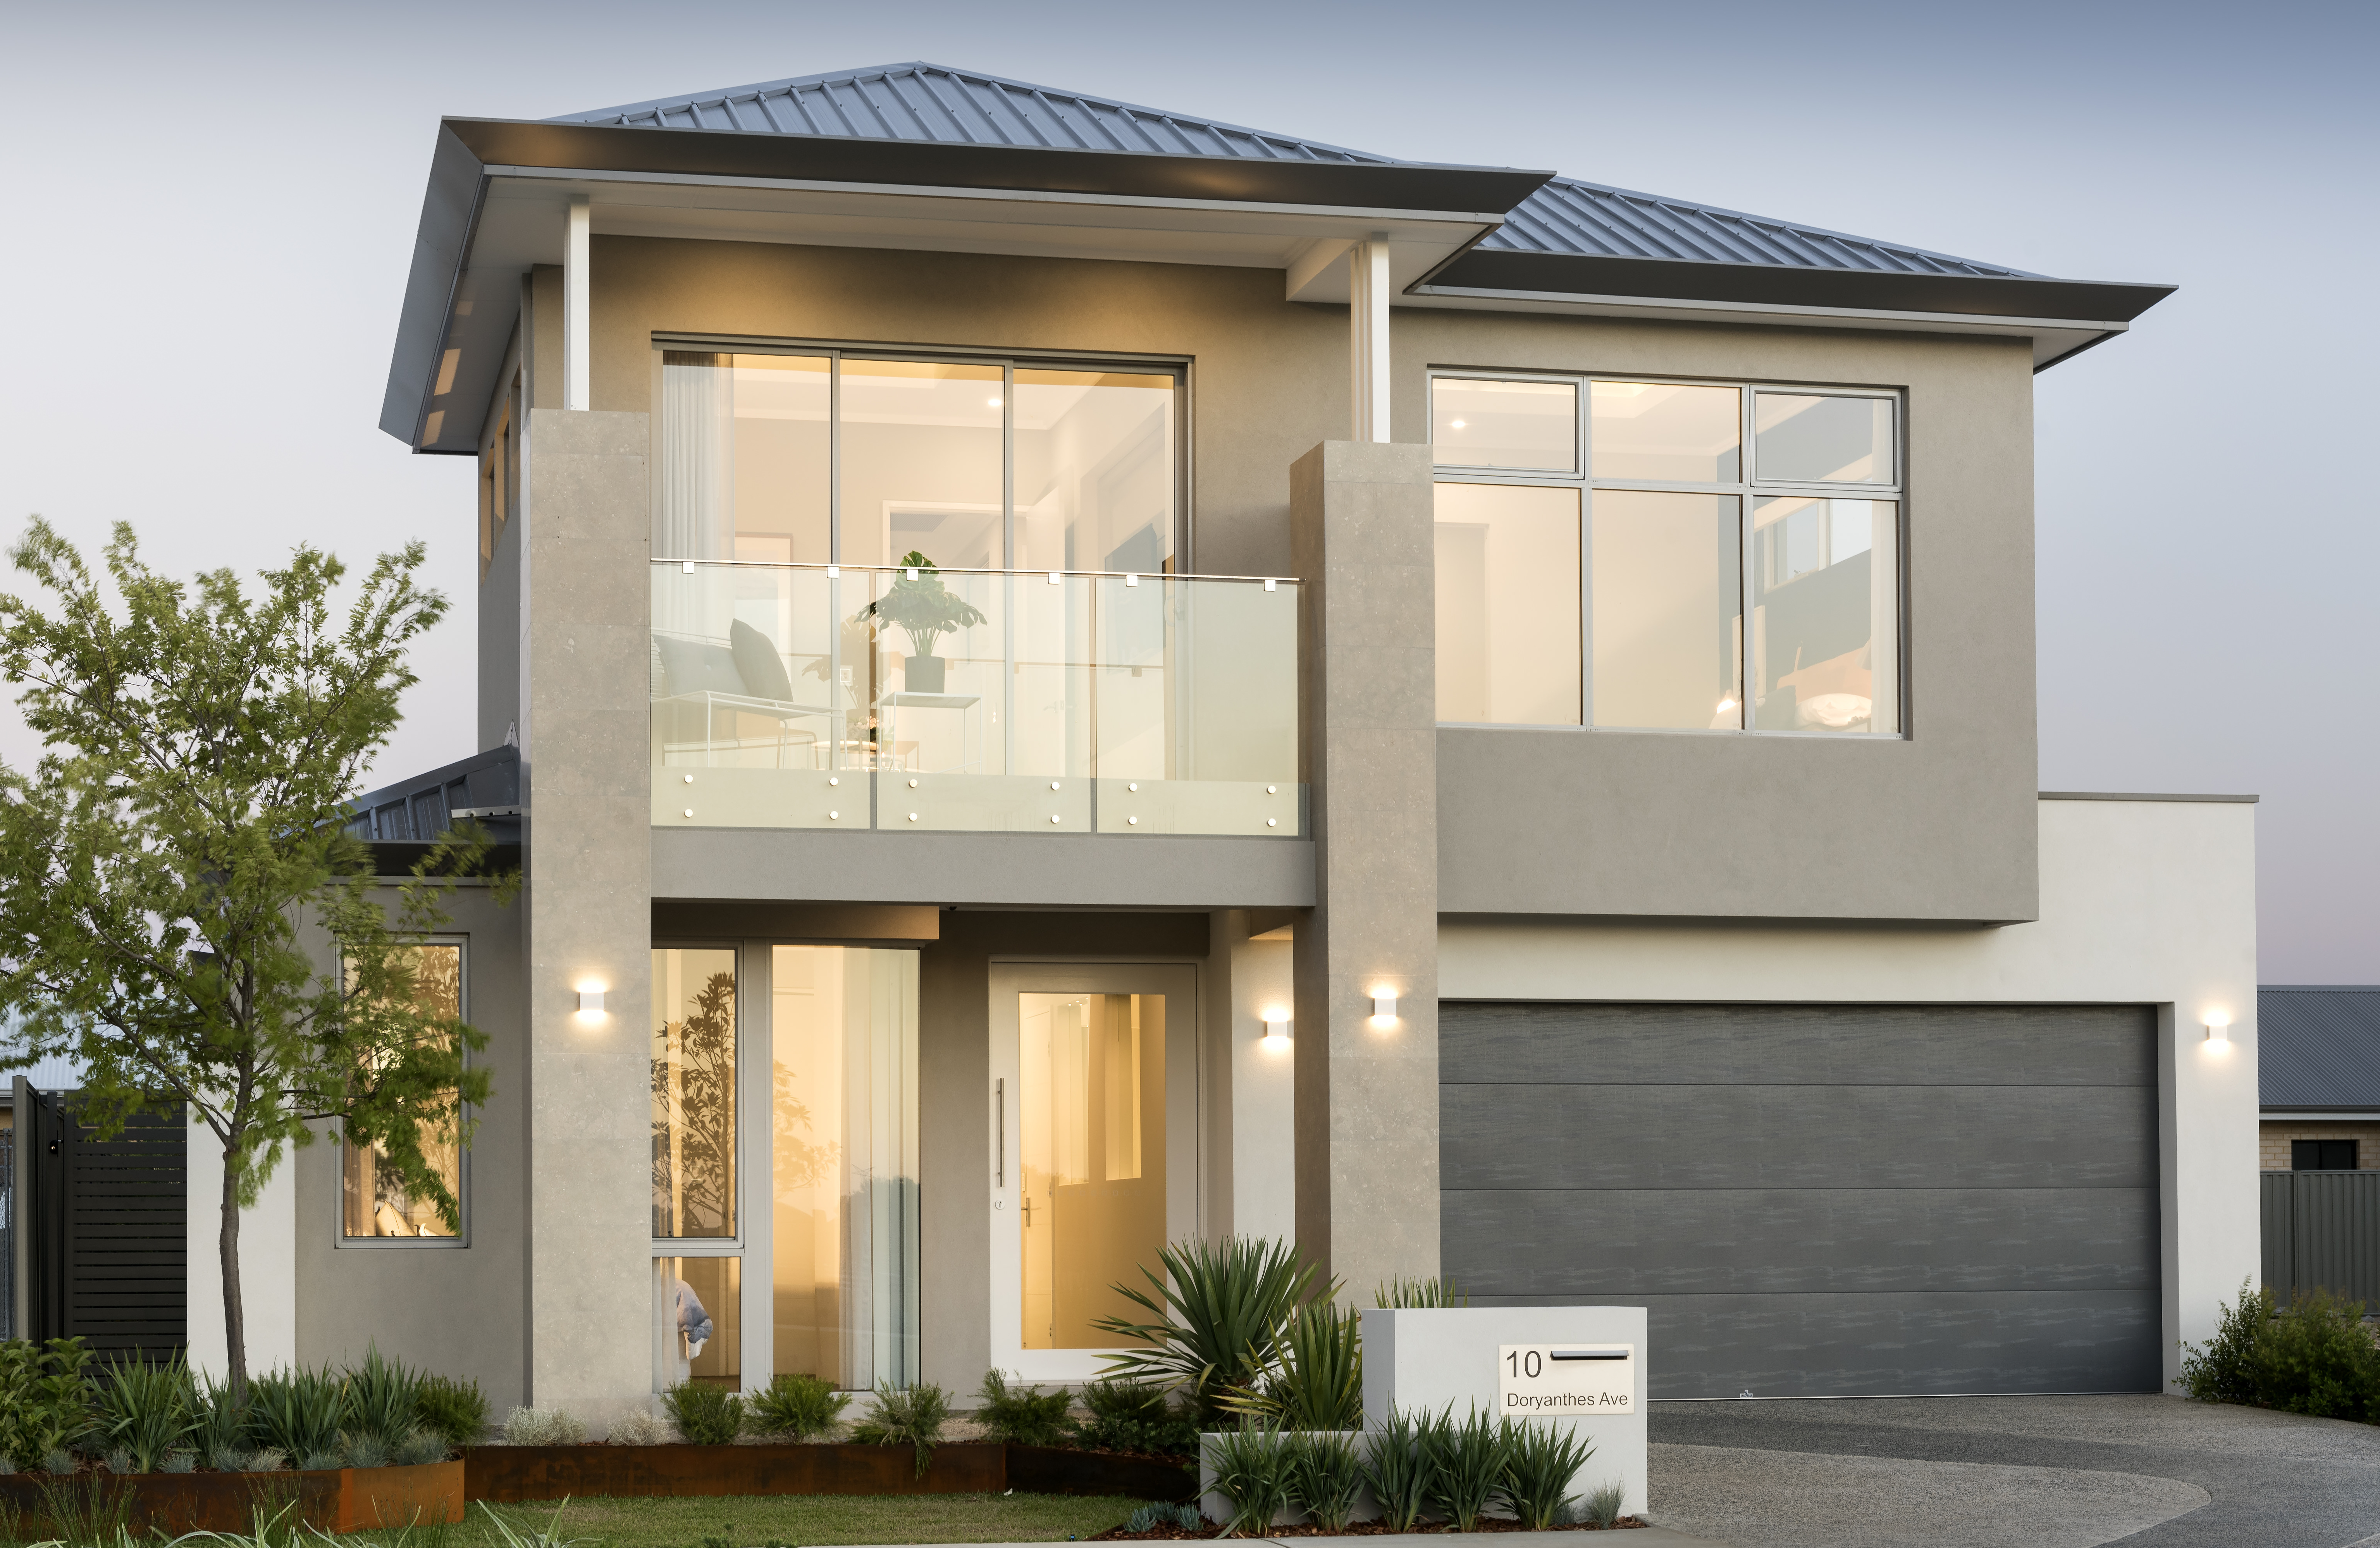 The oasis 101 residential display home perth wa for Serenity house perth